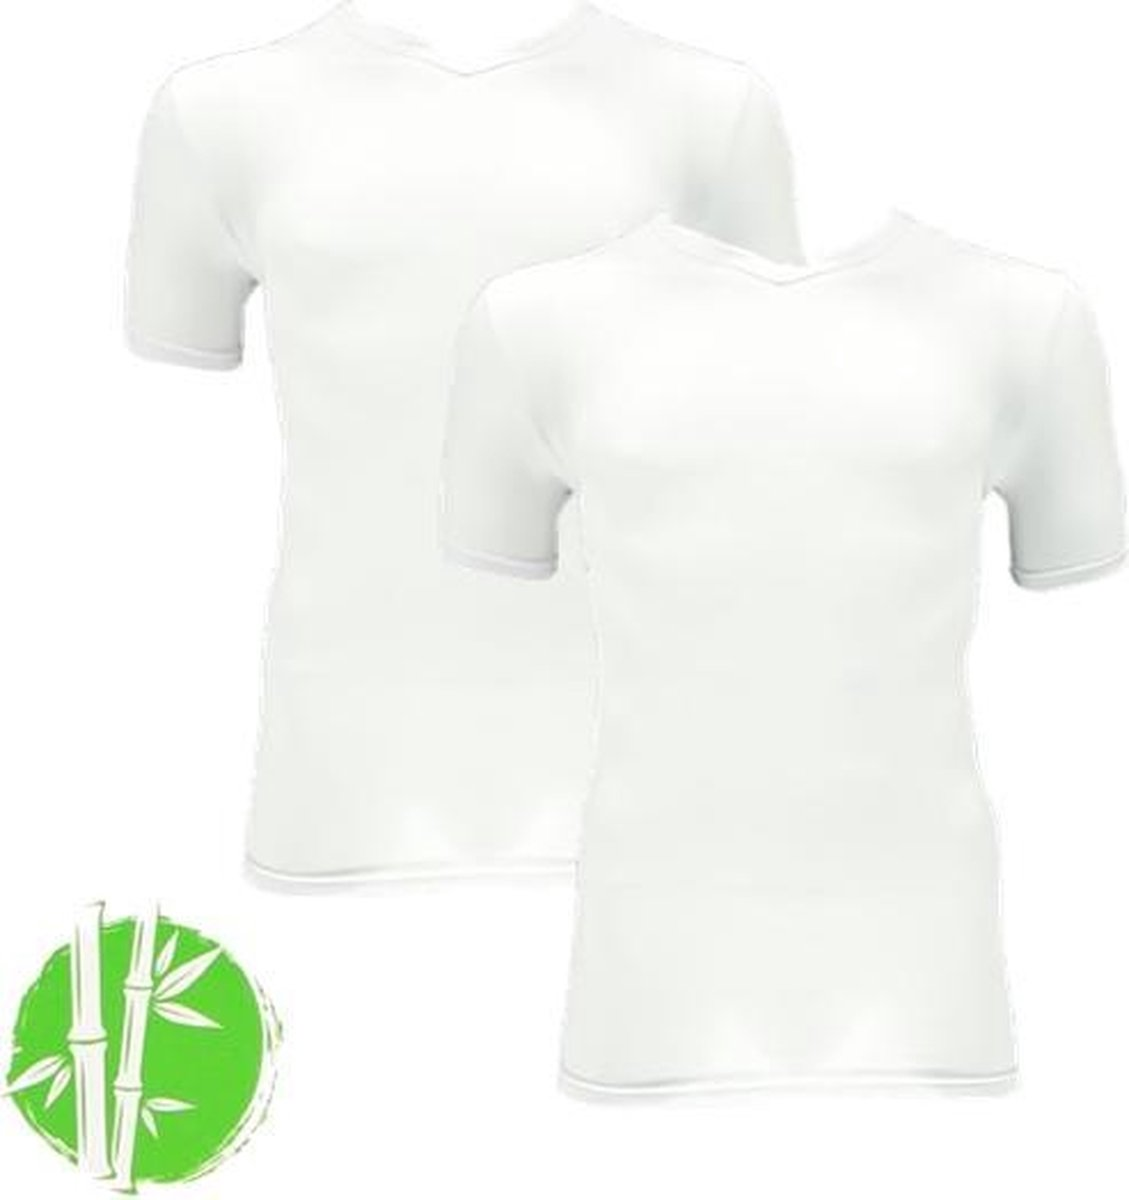 Apollo bamboo t-shirts | MAAT L | 2-pack heren t-shirts | wit